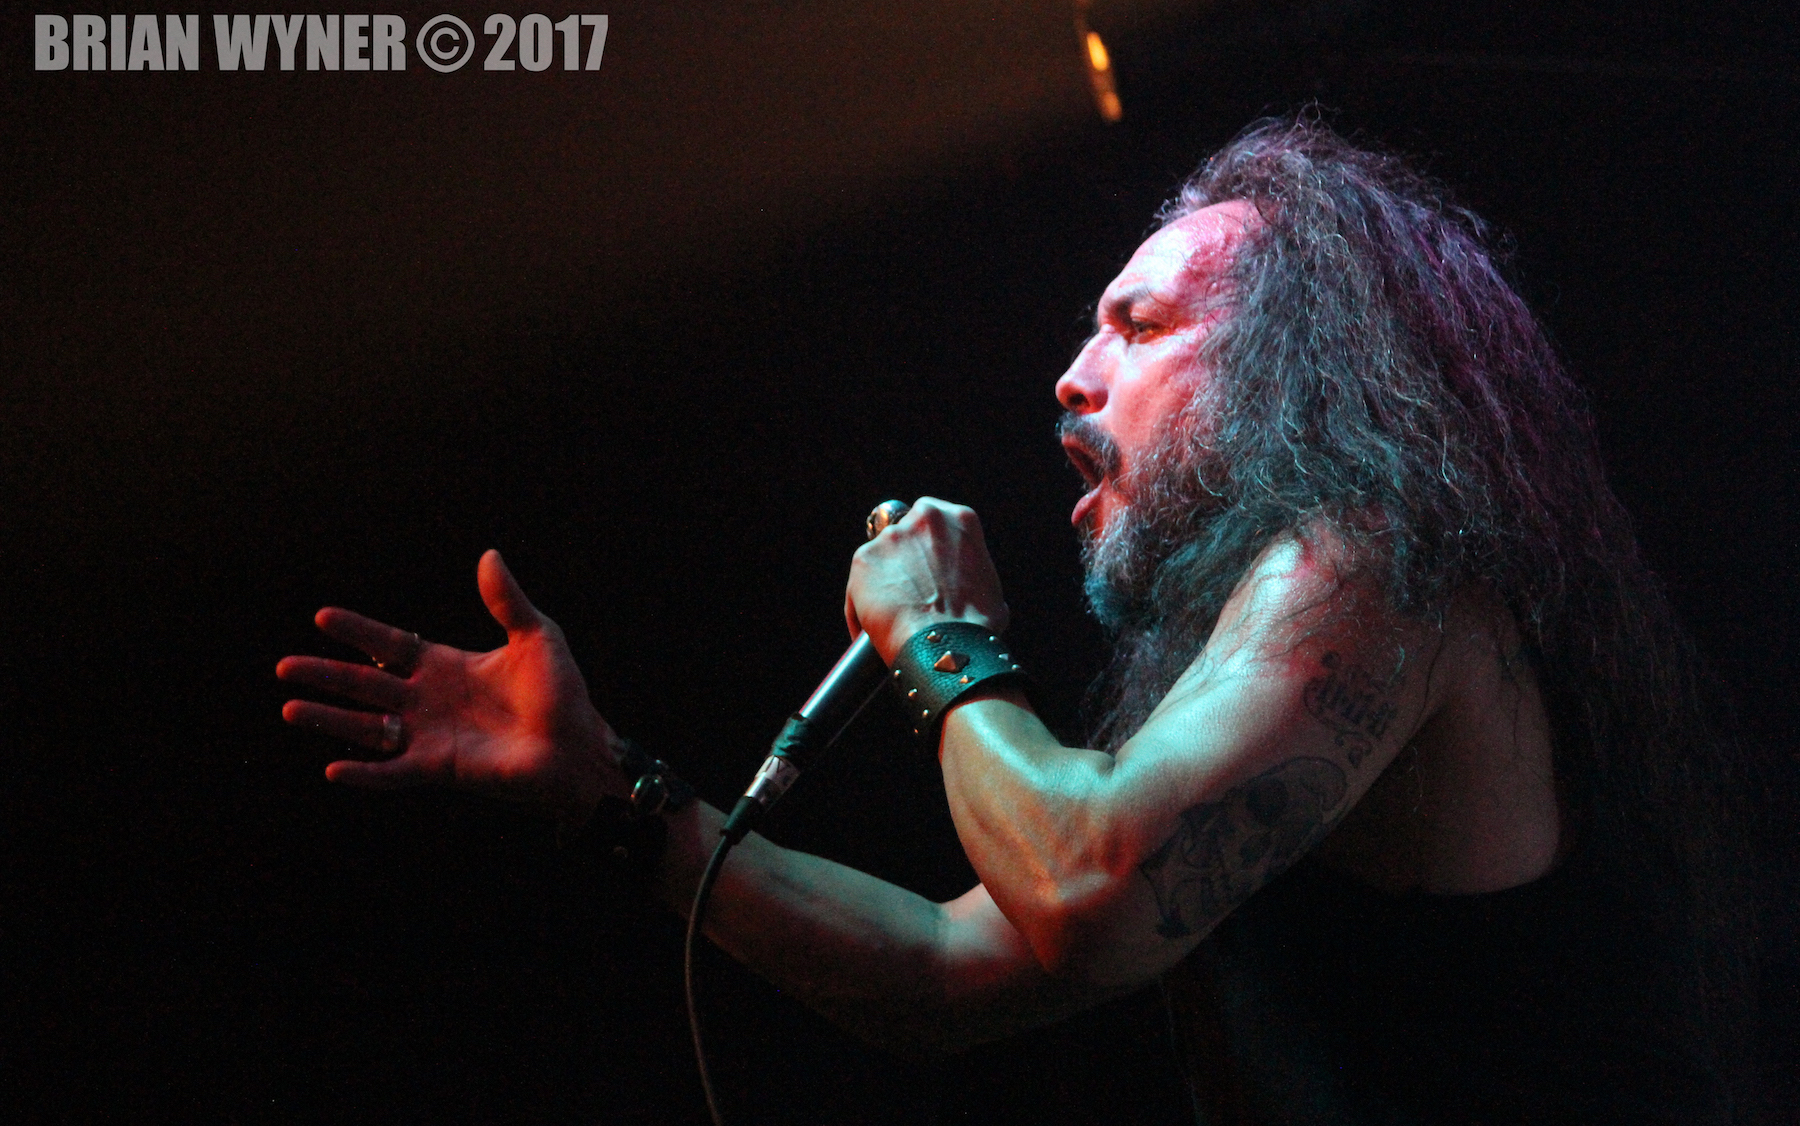 Concert Review + Live Photos: DEVILDRIVER, DEATH ANGEL w/ Winds Of Plague, The Agonist, Azreal